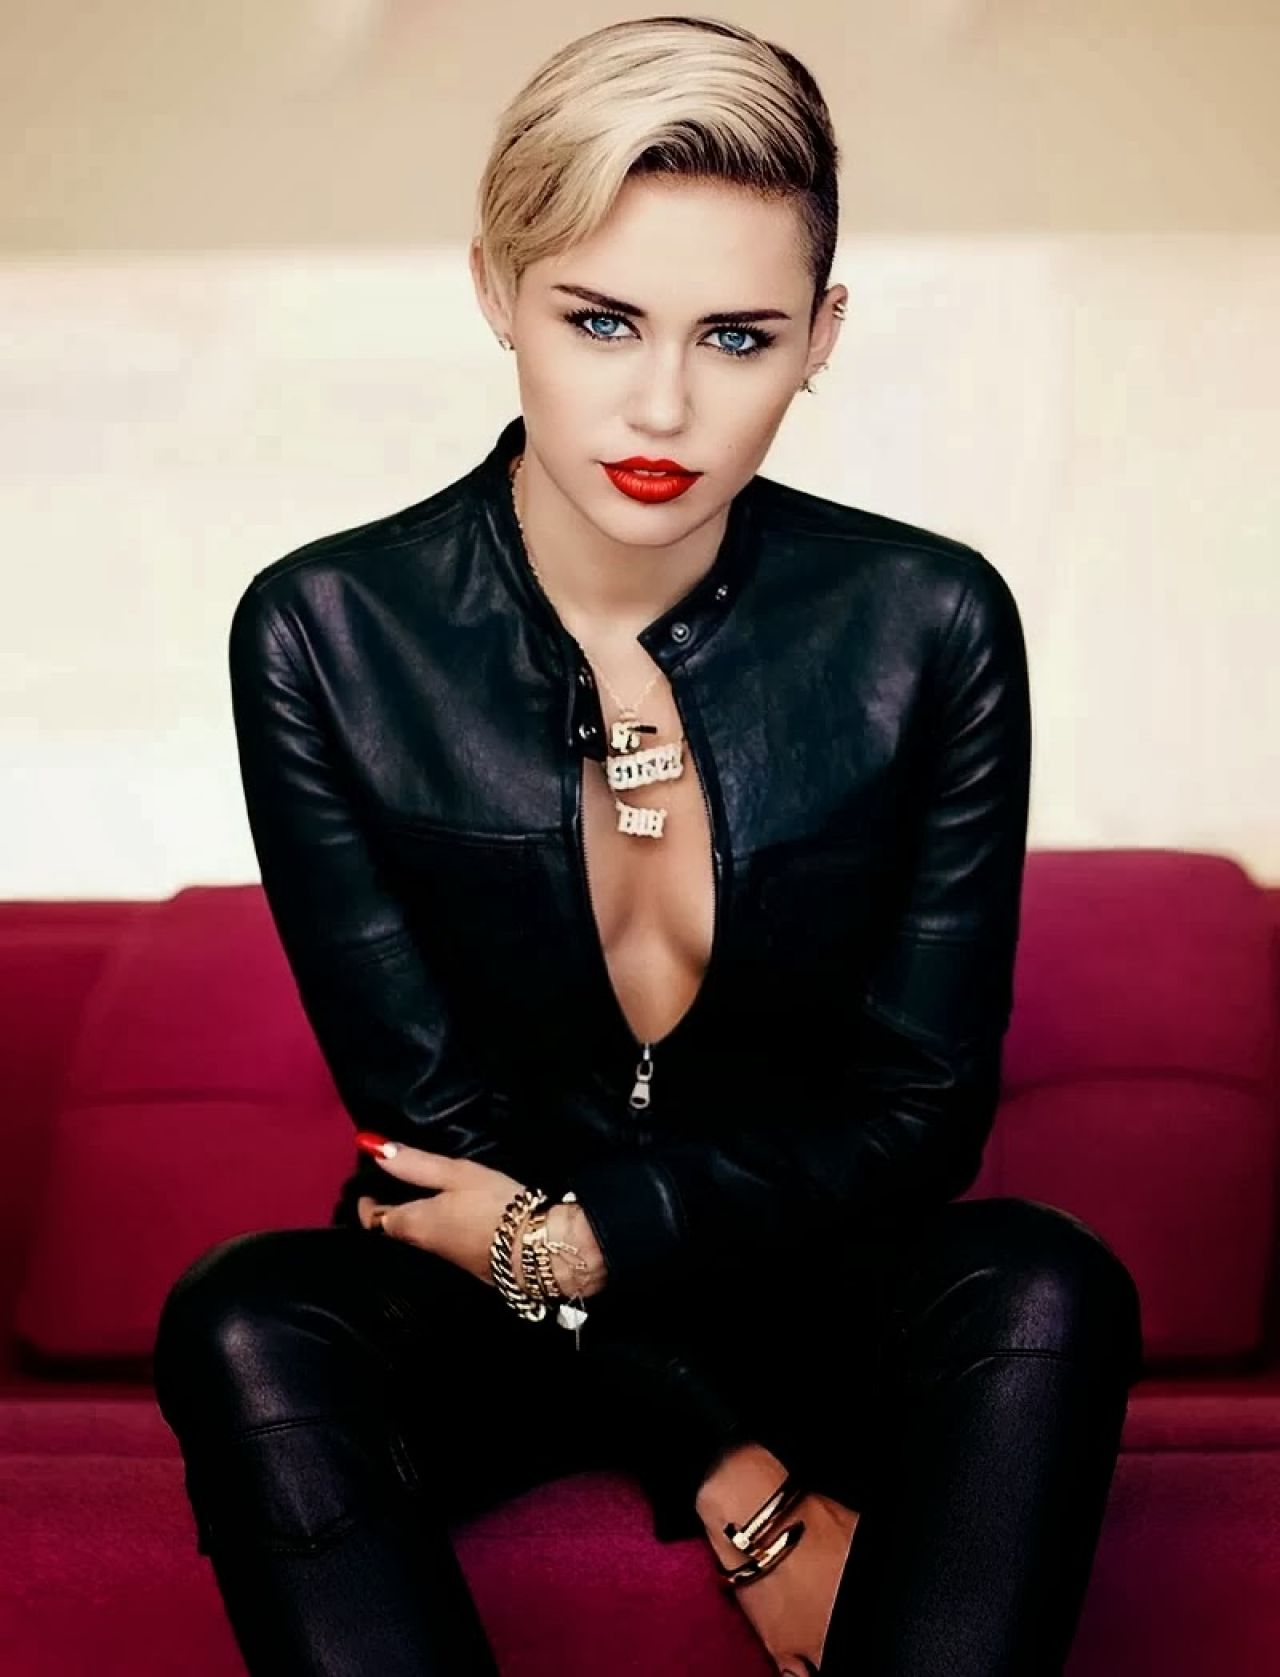 Miley Cyrus in Fashion Magazine, November 2013 Issue